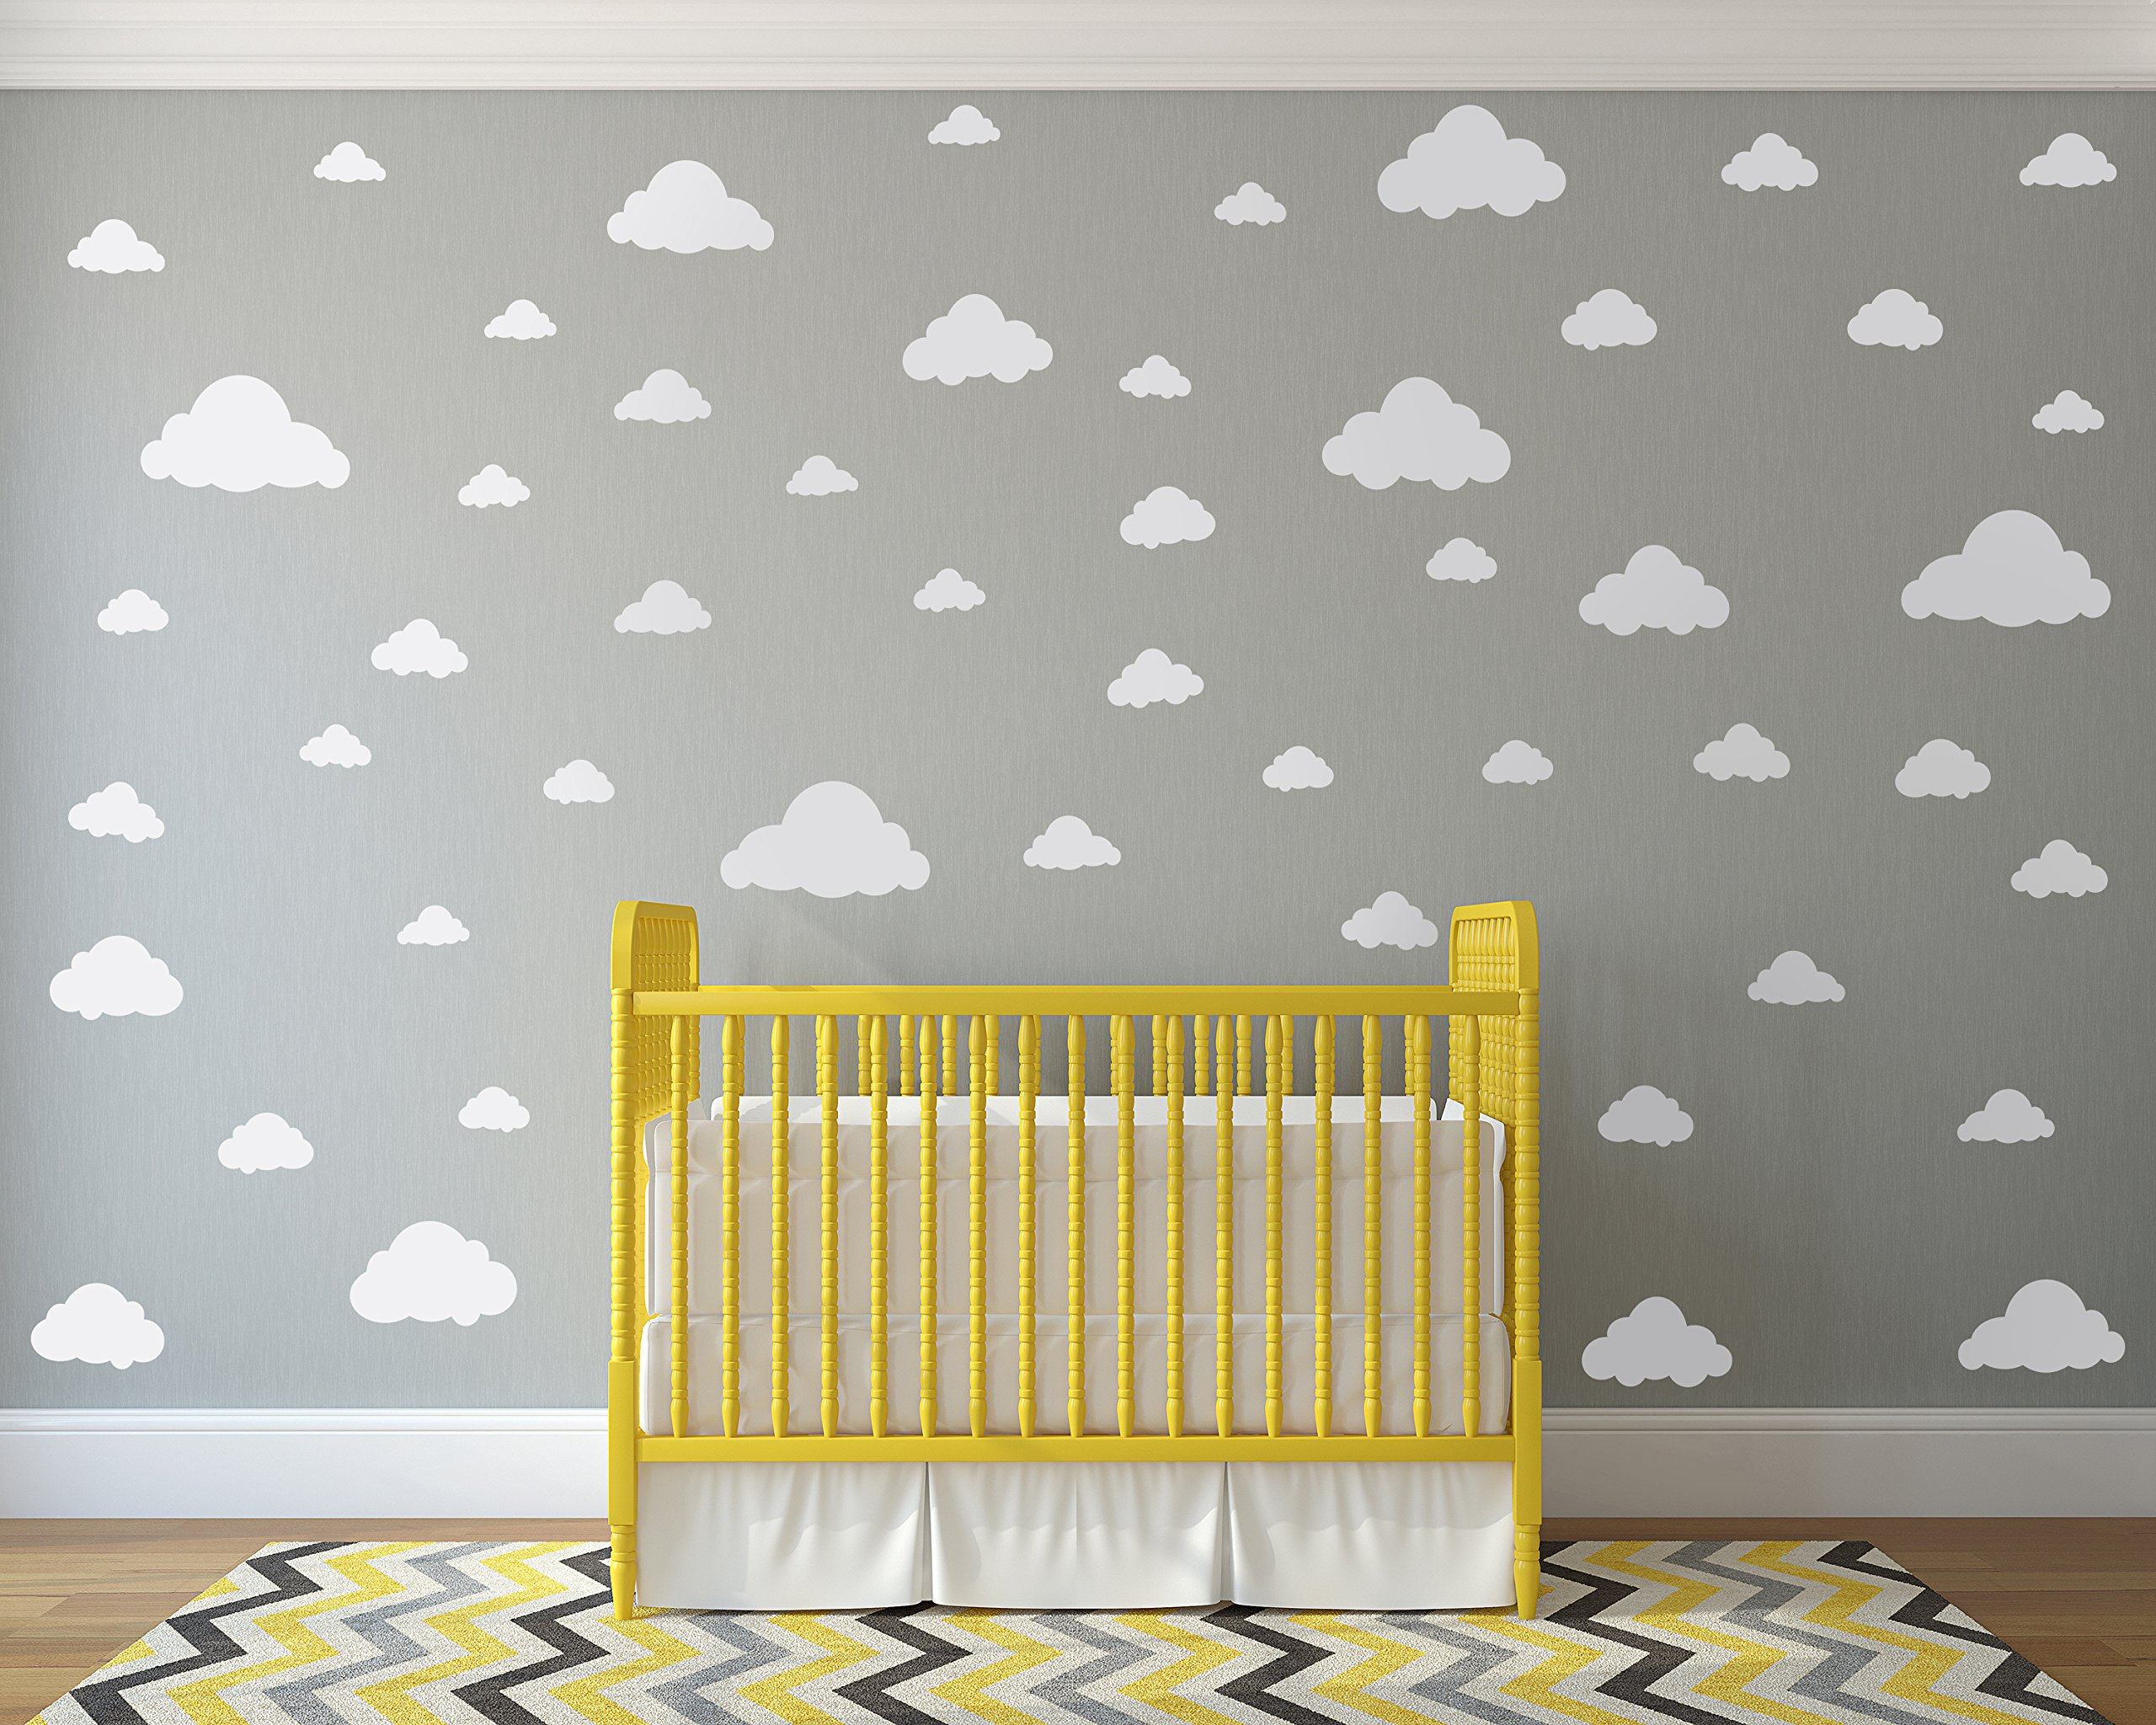 White Clouds Sky Wall Decals - Easy Peel + Stick 50 Clouds Pack ...